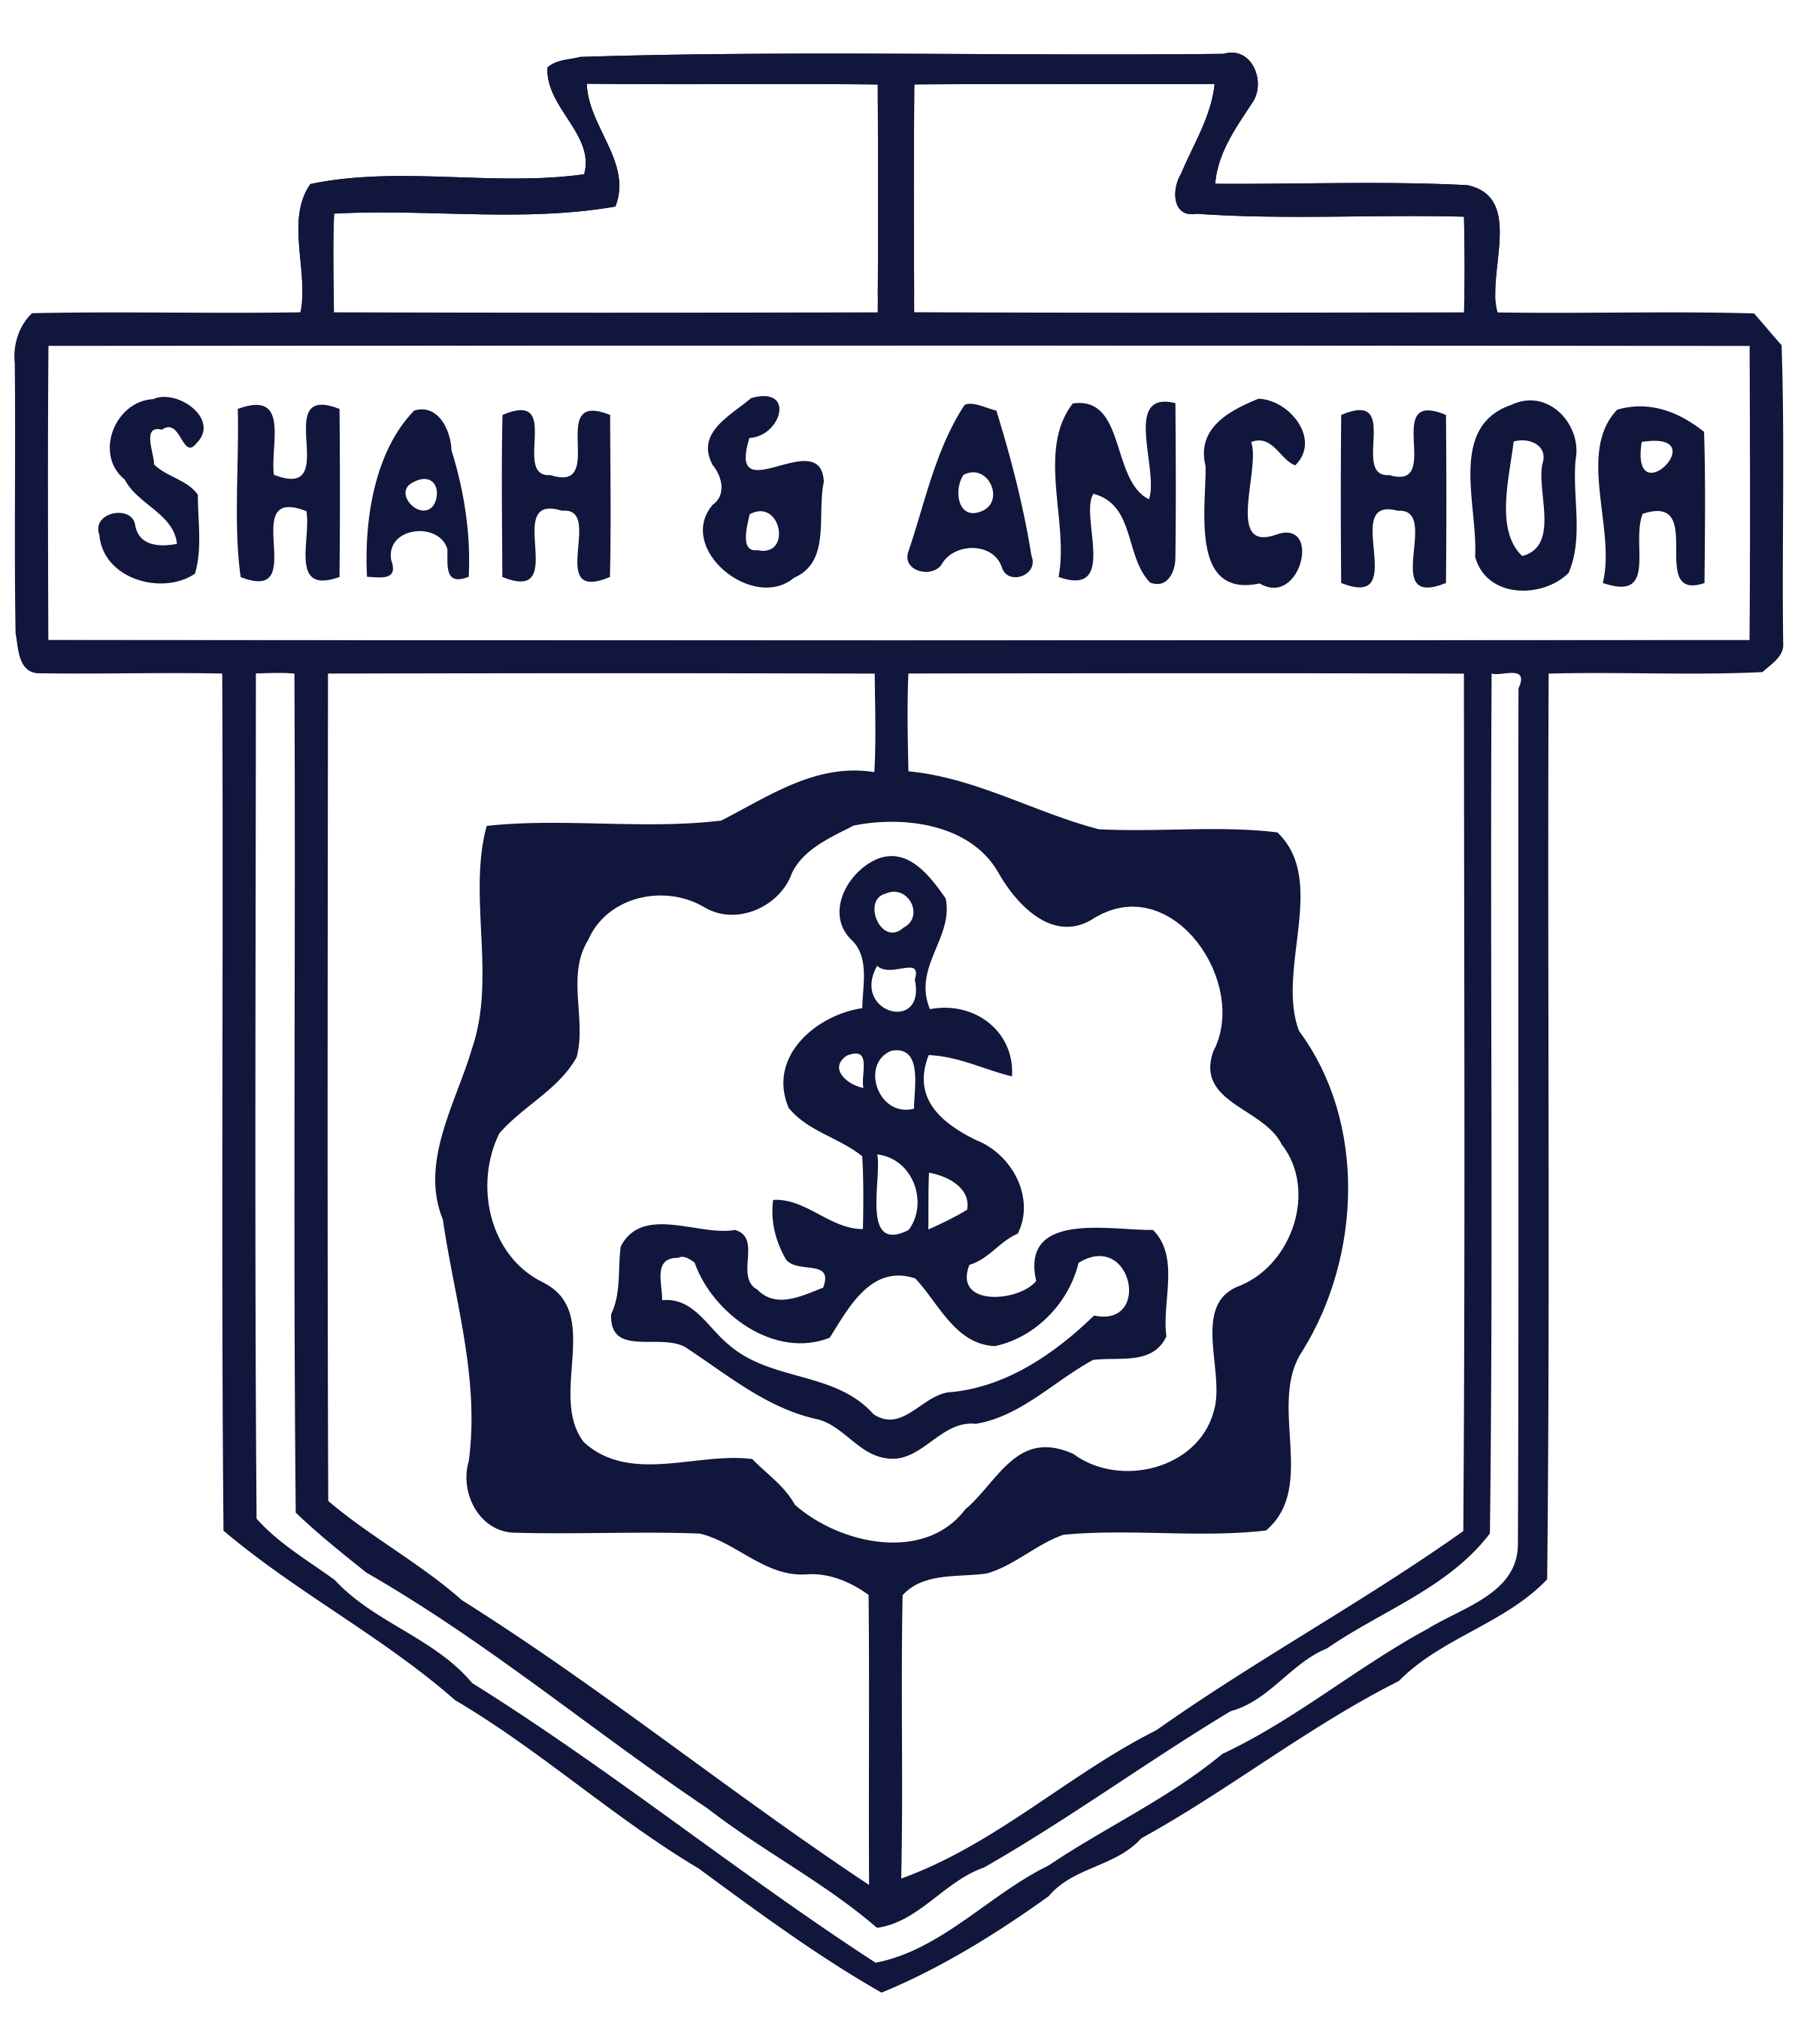 File:Shah & Anchor (blue).png.